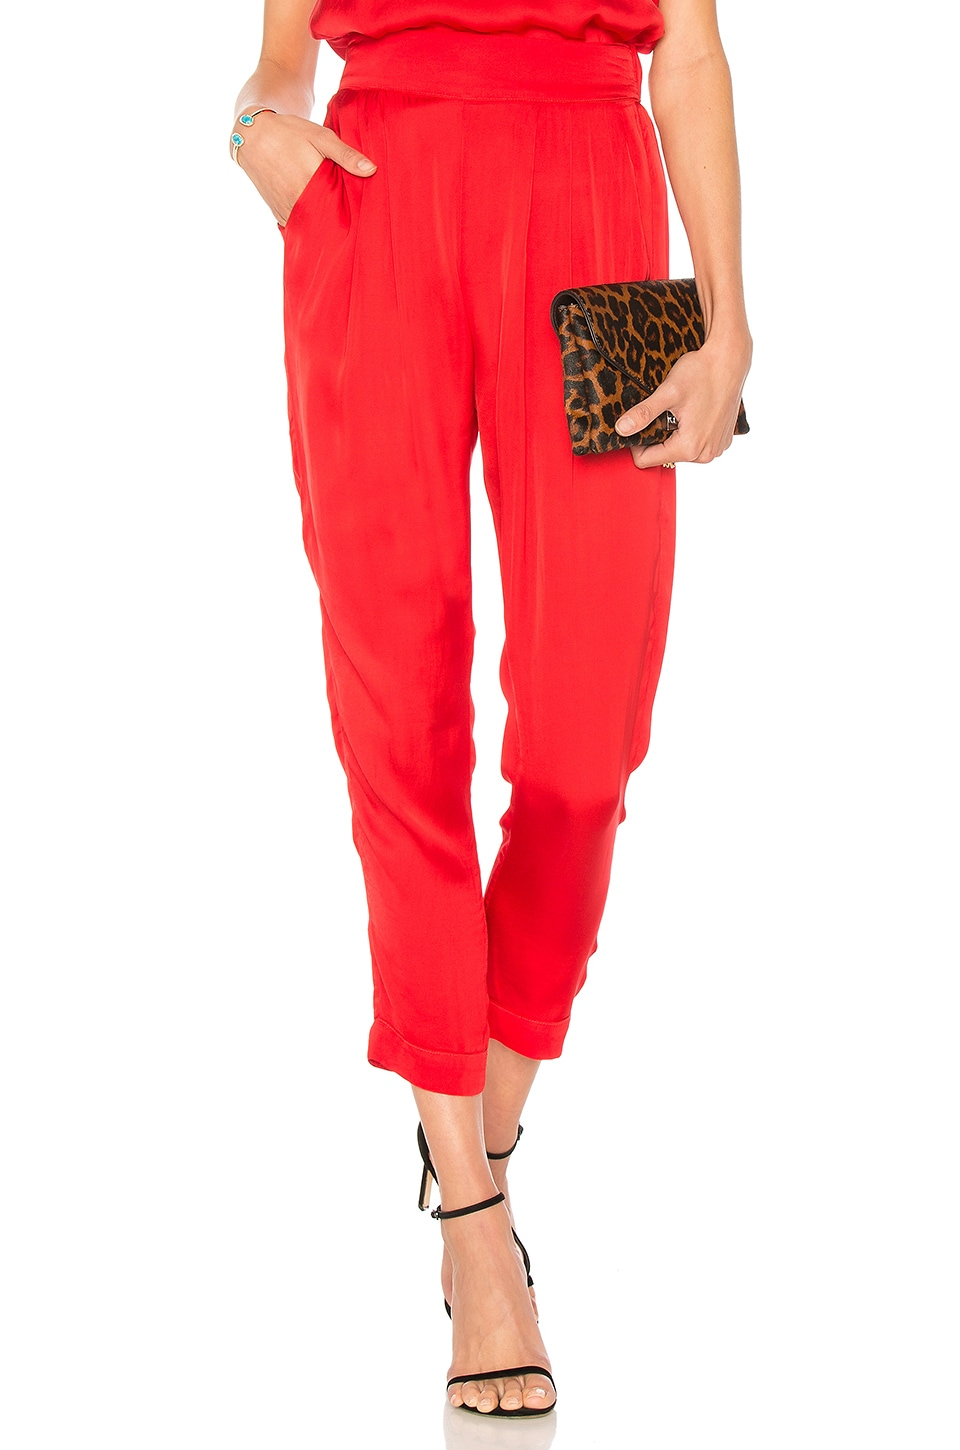 Enza Costa Pleated Easy Pant in Iconic Red